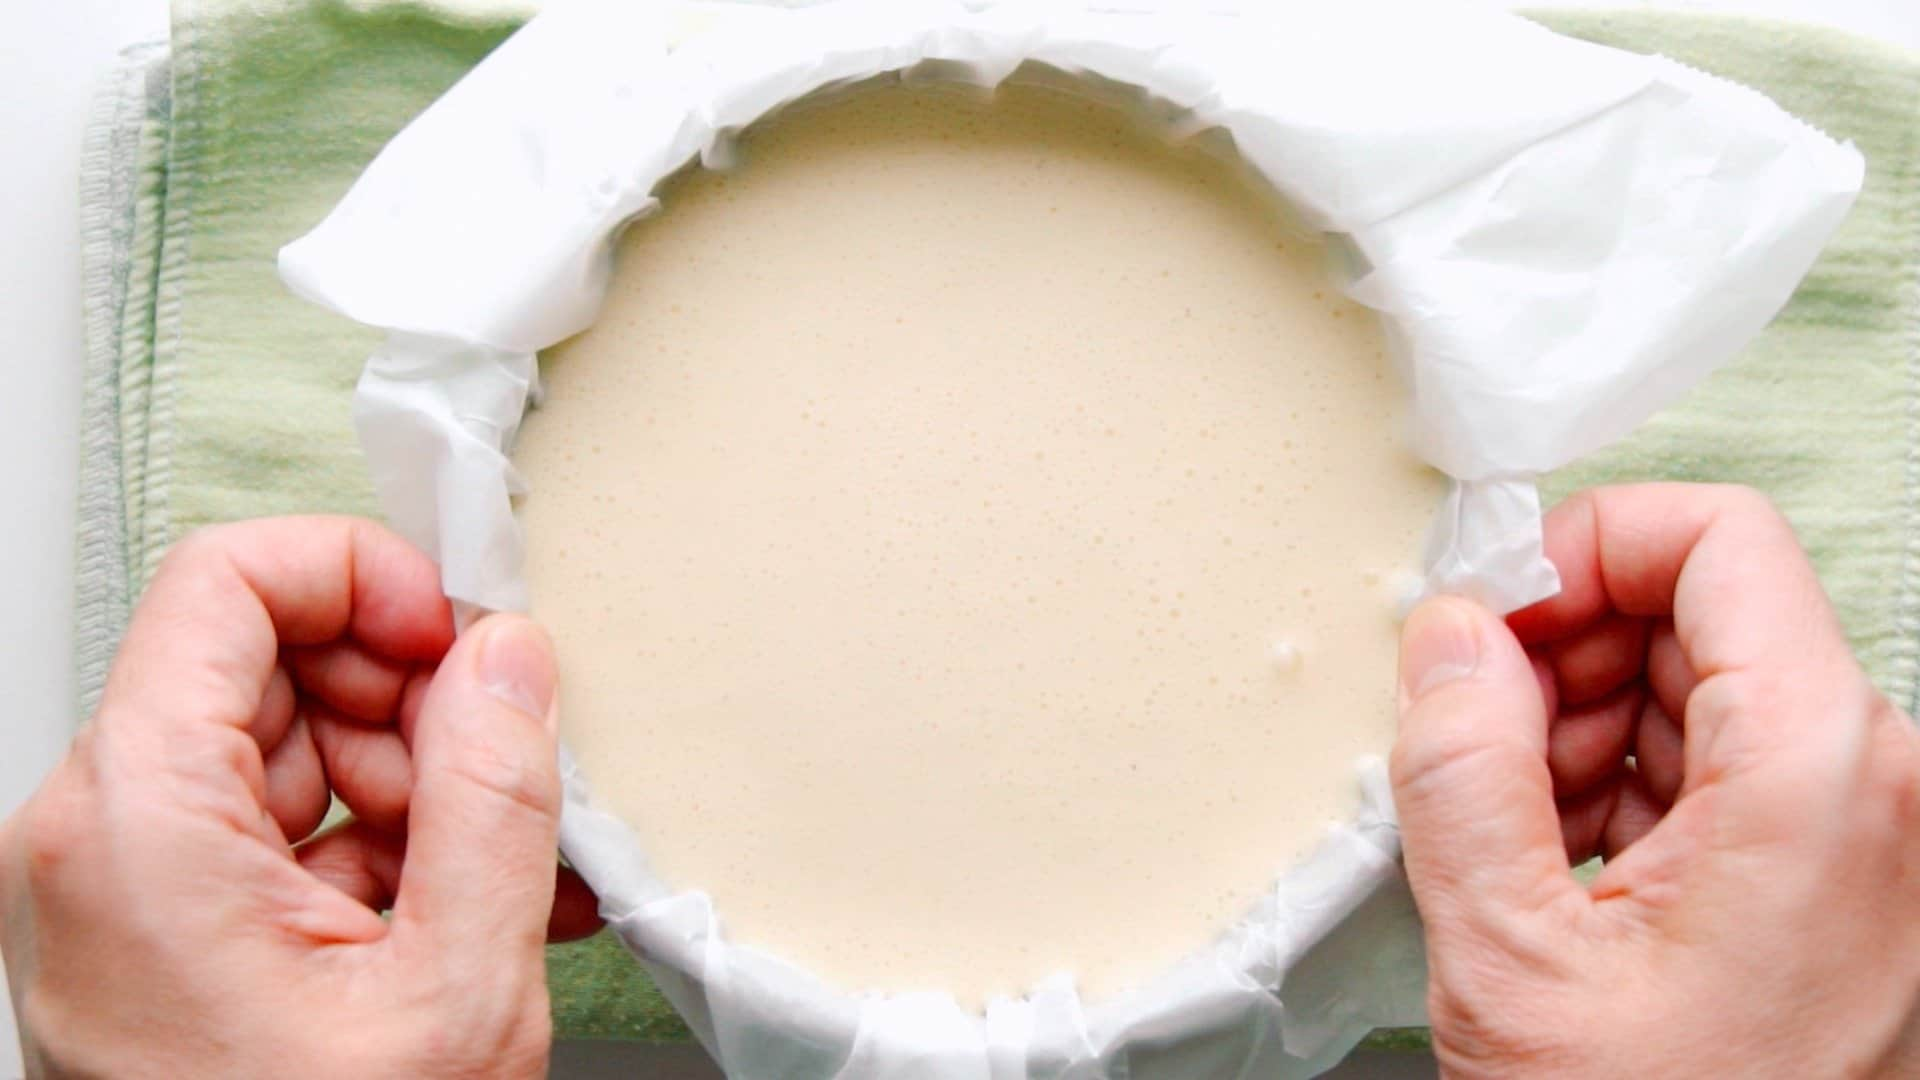 Removing bubbles from the cheesecake batter by dropping the pan on a flat surface.